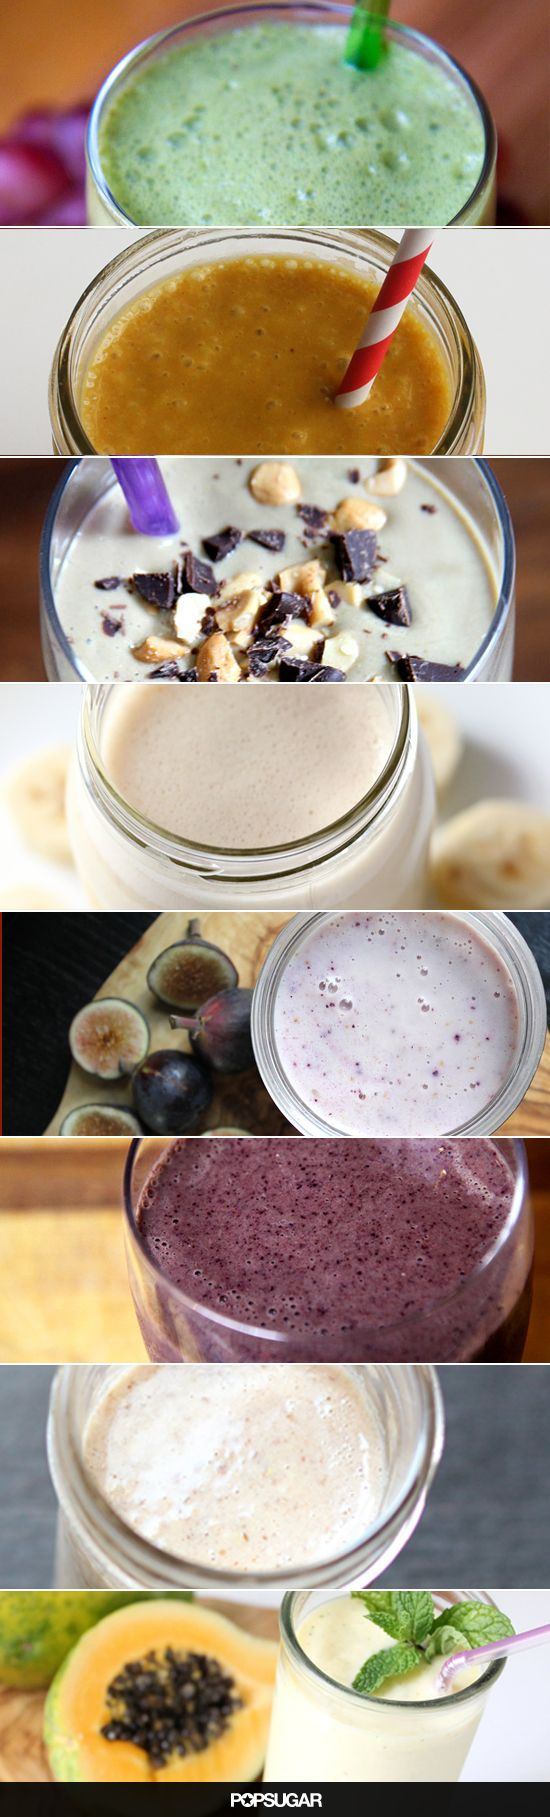 If you love smoothies, we've got a ton of recipes that you need to try! Fruity, chocolatey, protein-packed, and more.